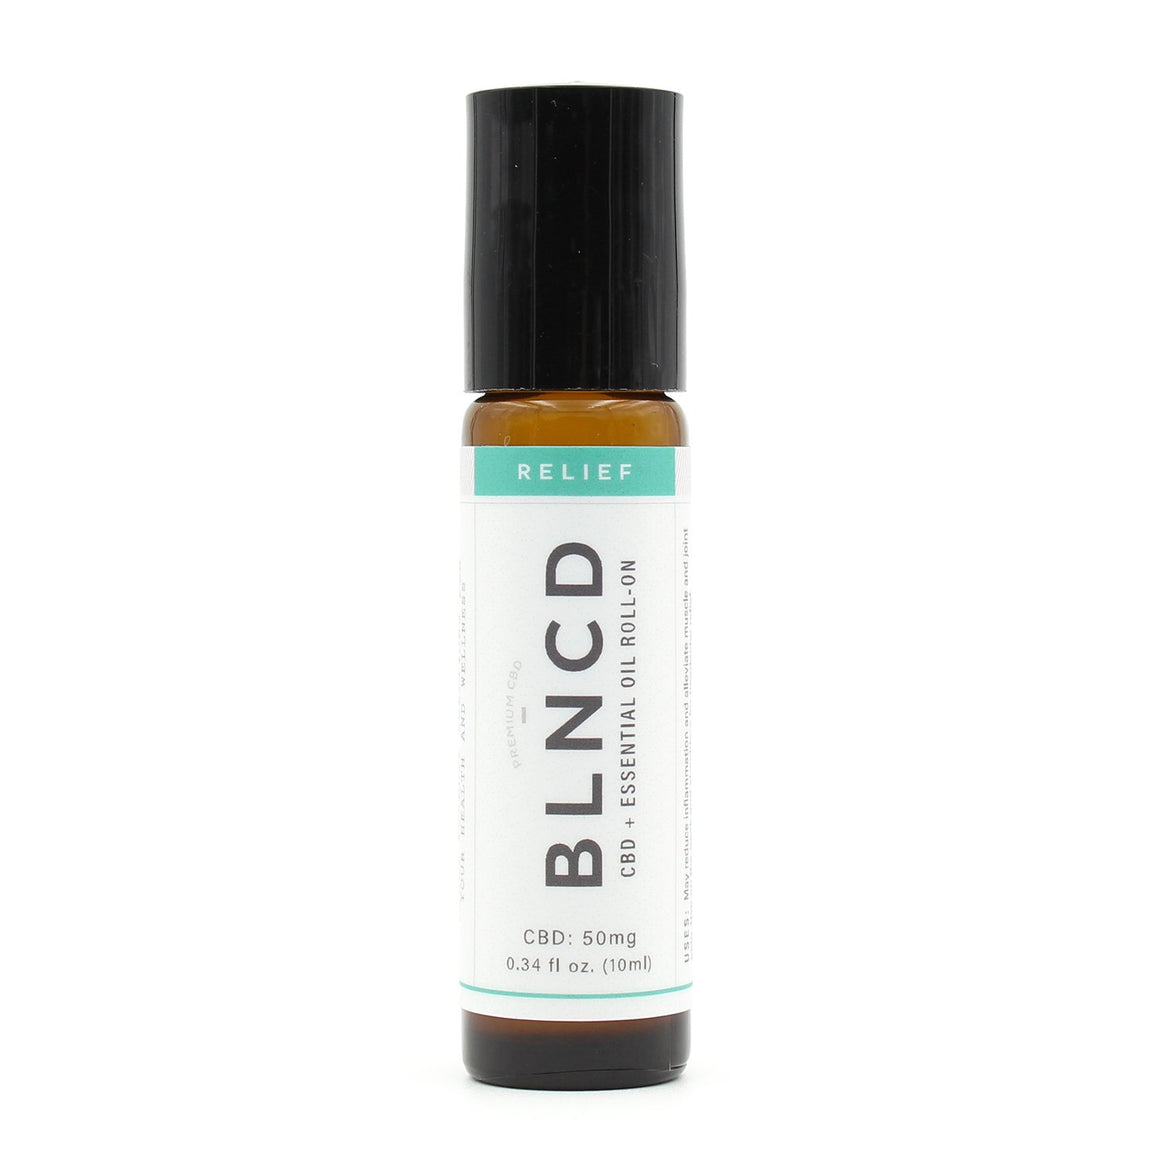 BLNCD Naturals CBD Oil Roll On - Relief at Modest Hemp Co.